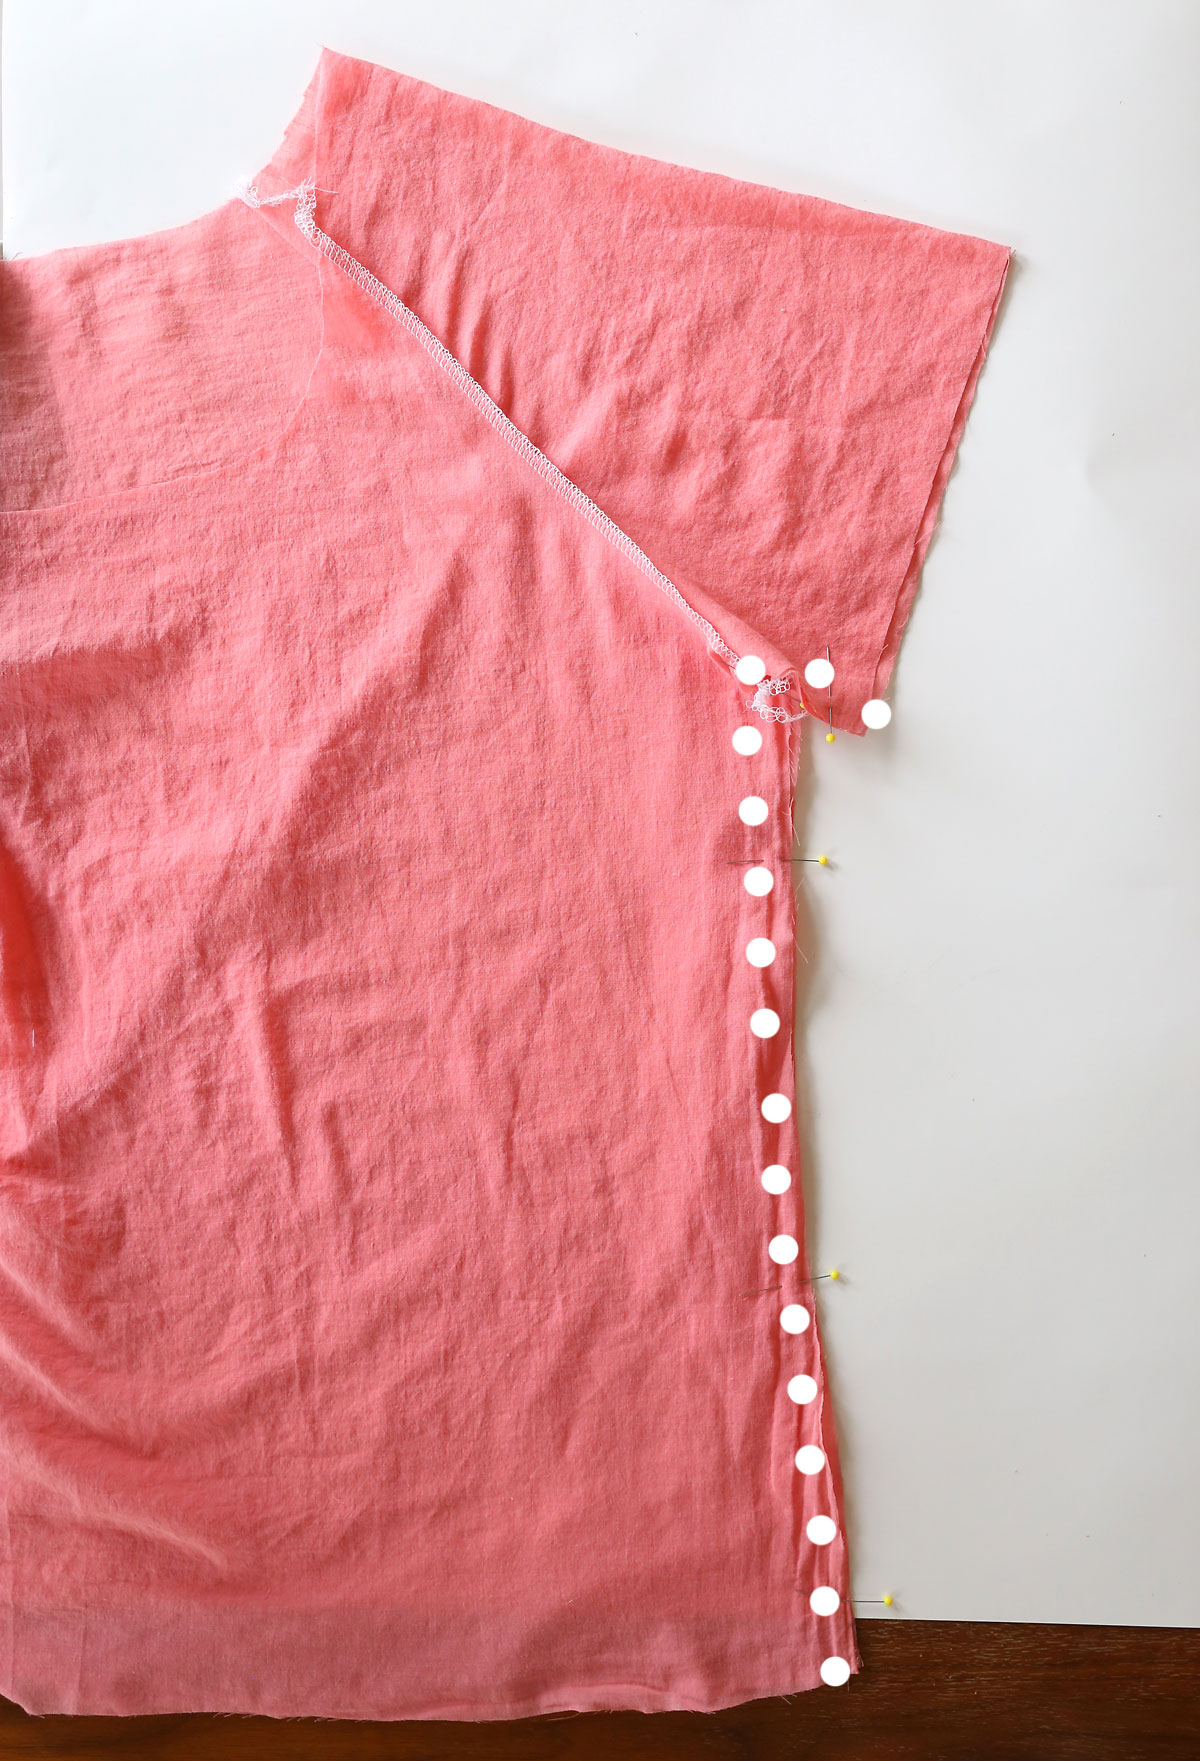 Gathered blouse: sew the side seams